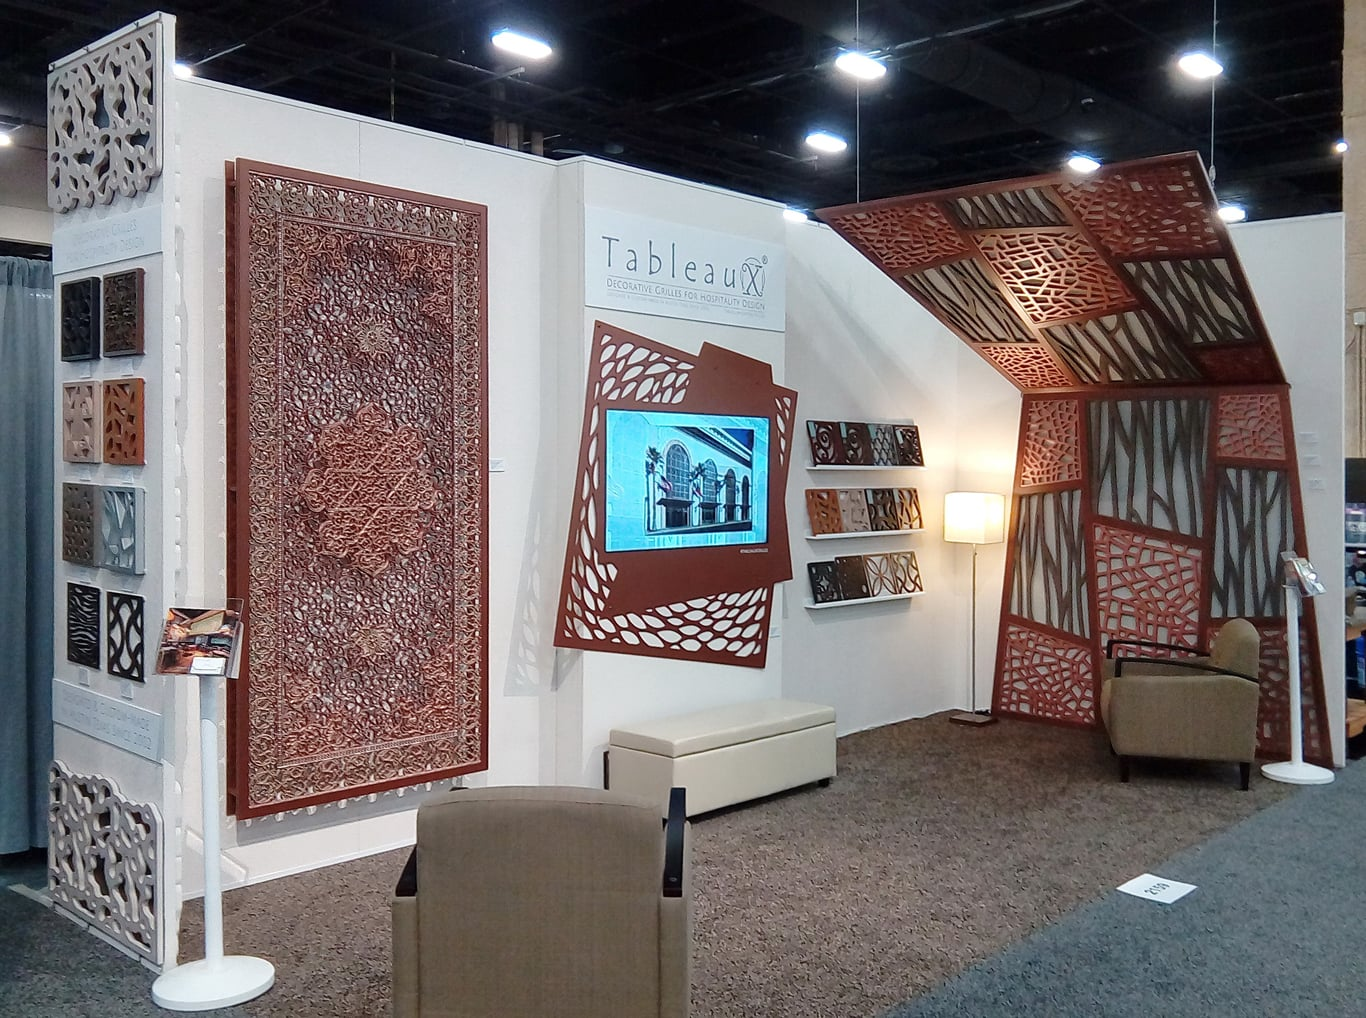 Tableaux exhibit at HD Expo